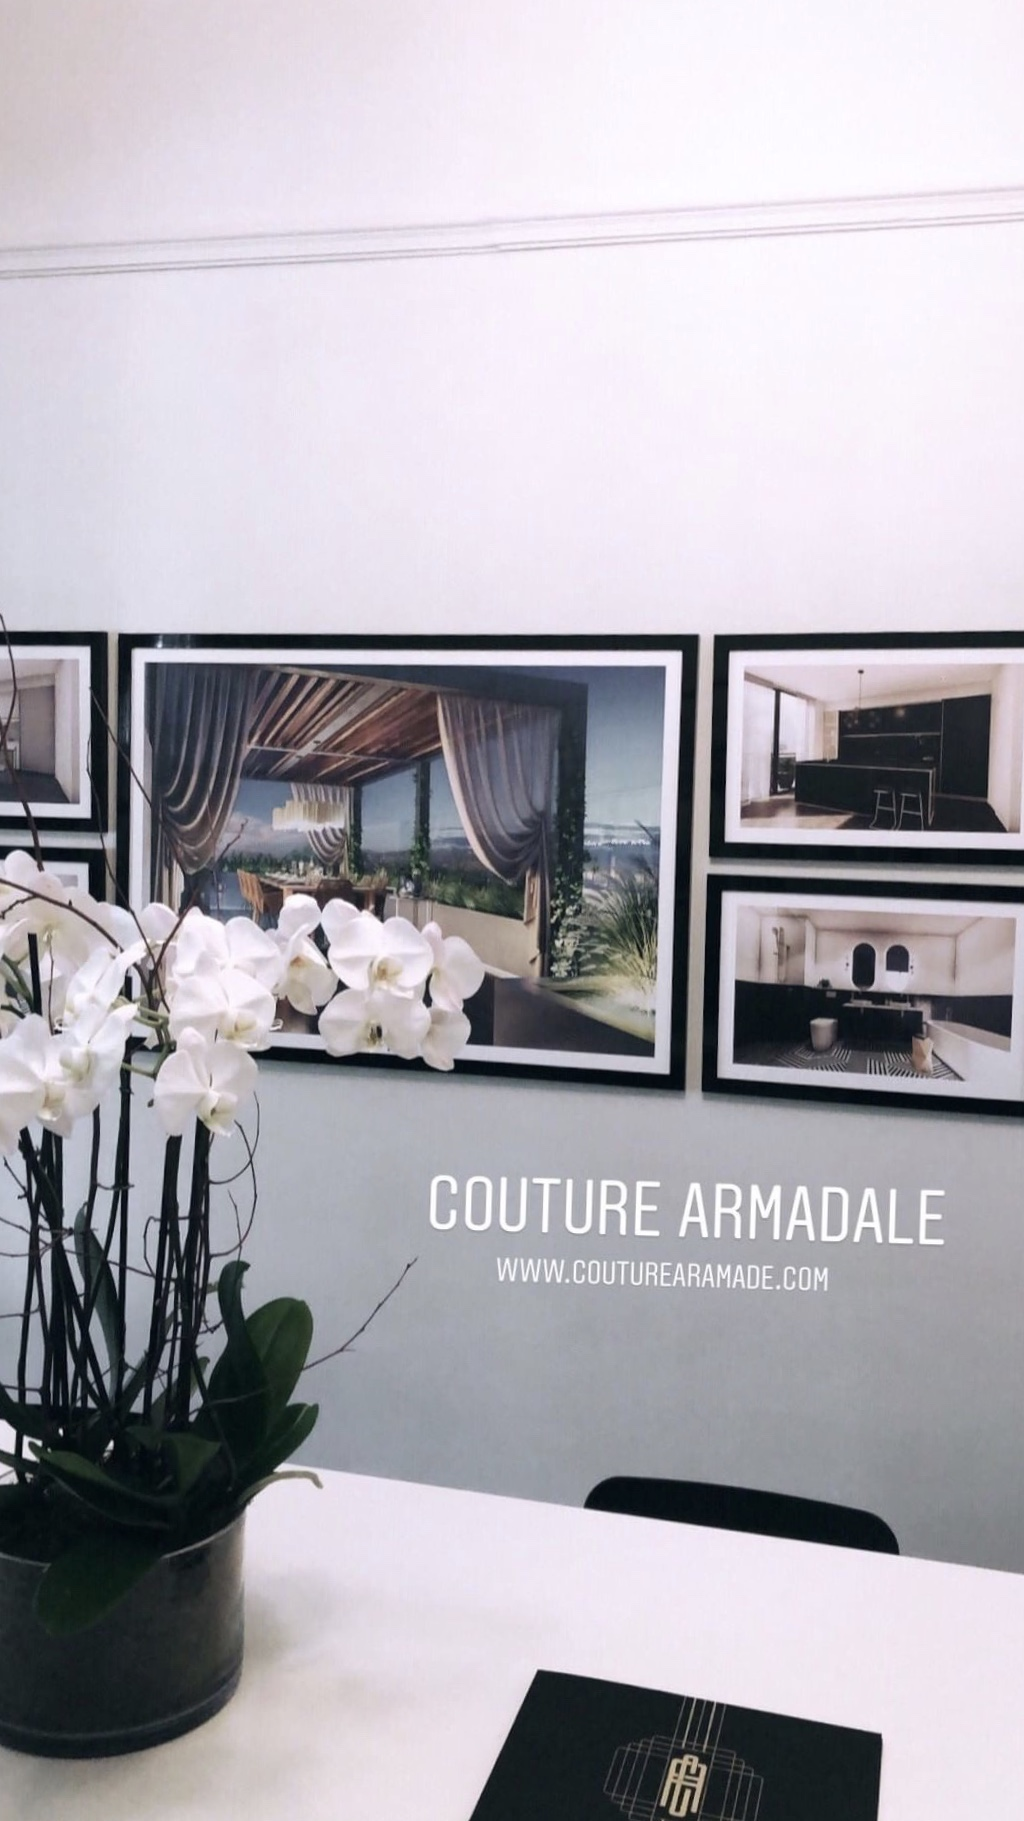 Couture Armadale launches. Display now open!